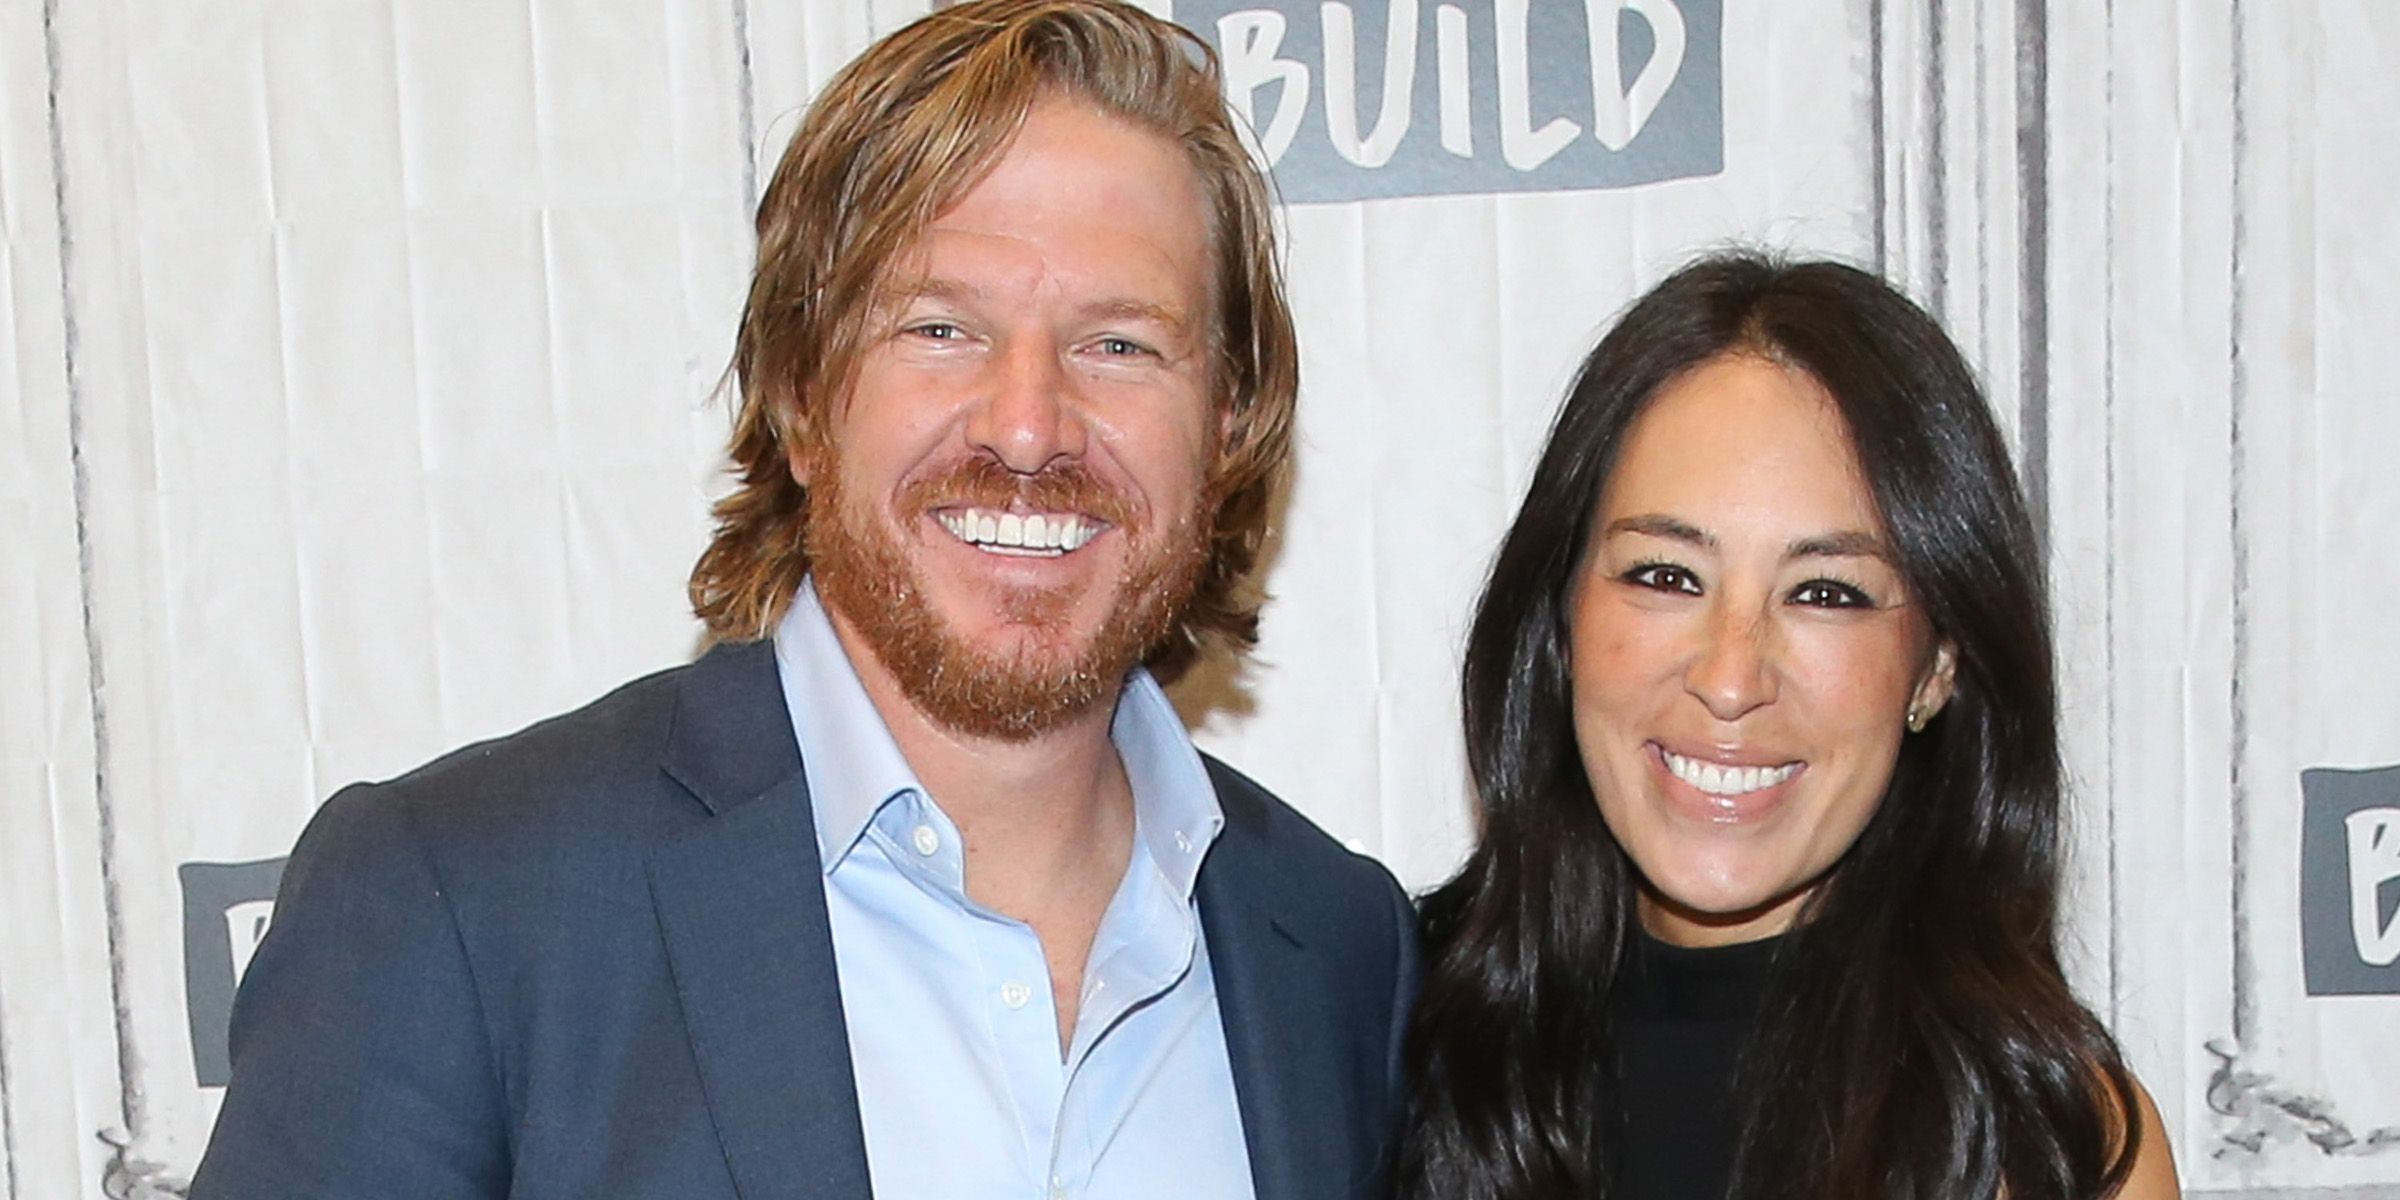 Flip or flop per episode rate chip and joanna gaines s net for How much are tarek and christina worth